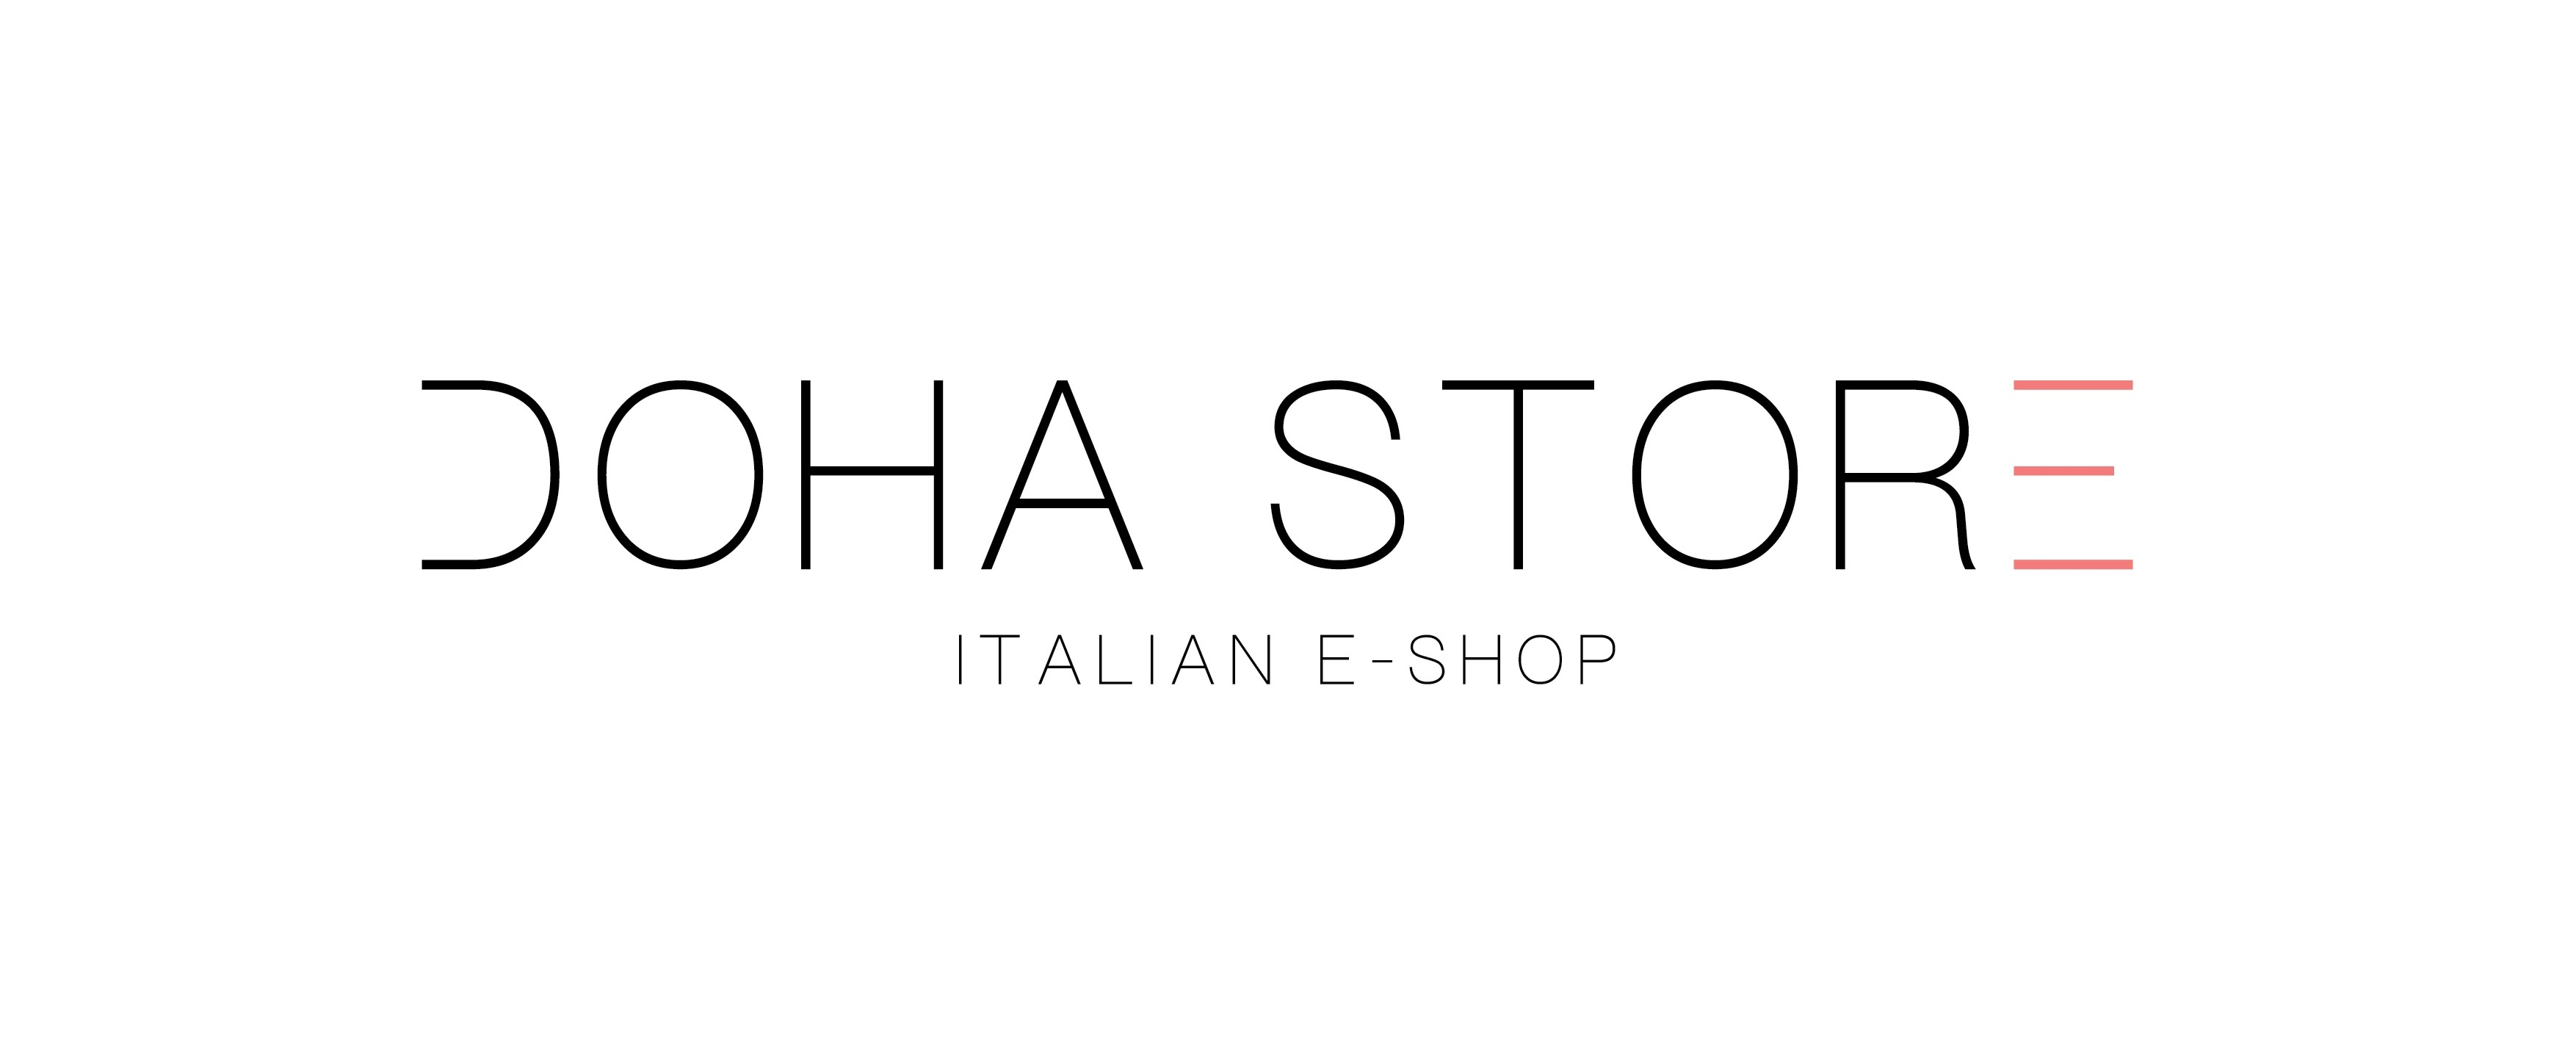 dohastore.it